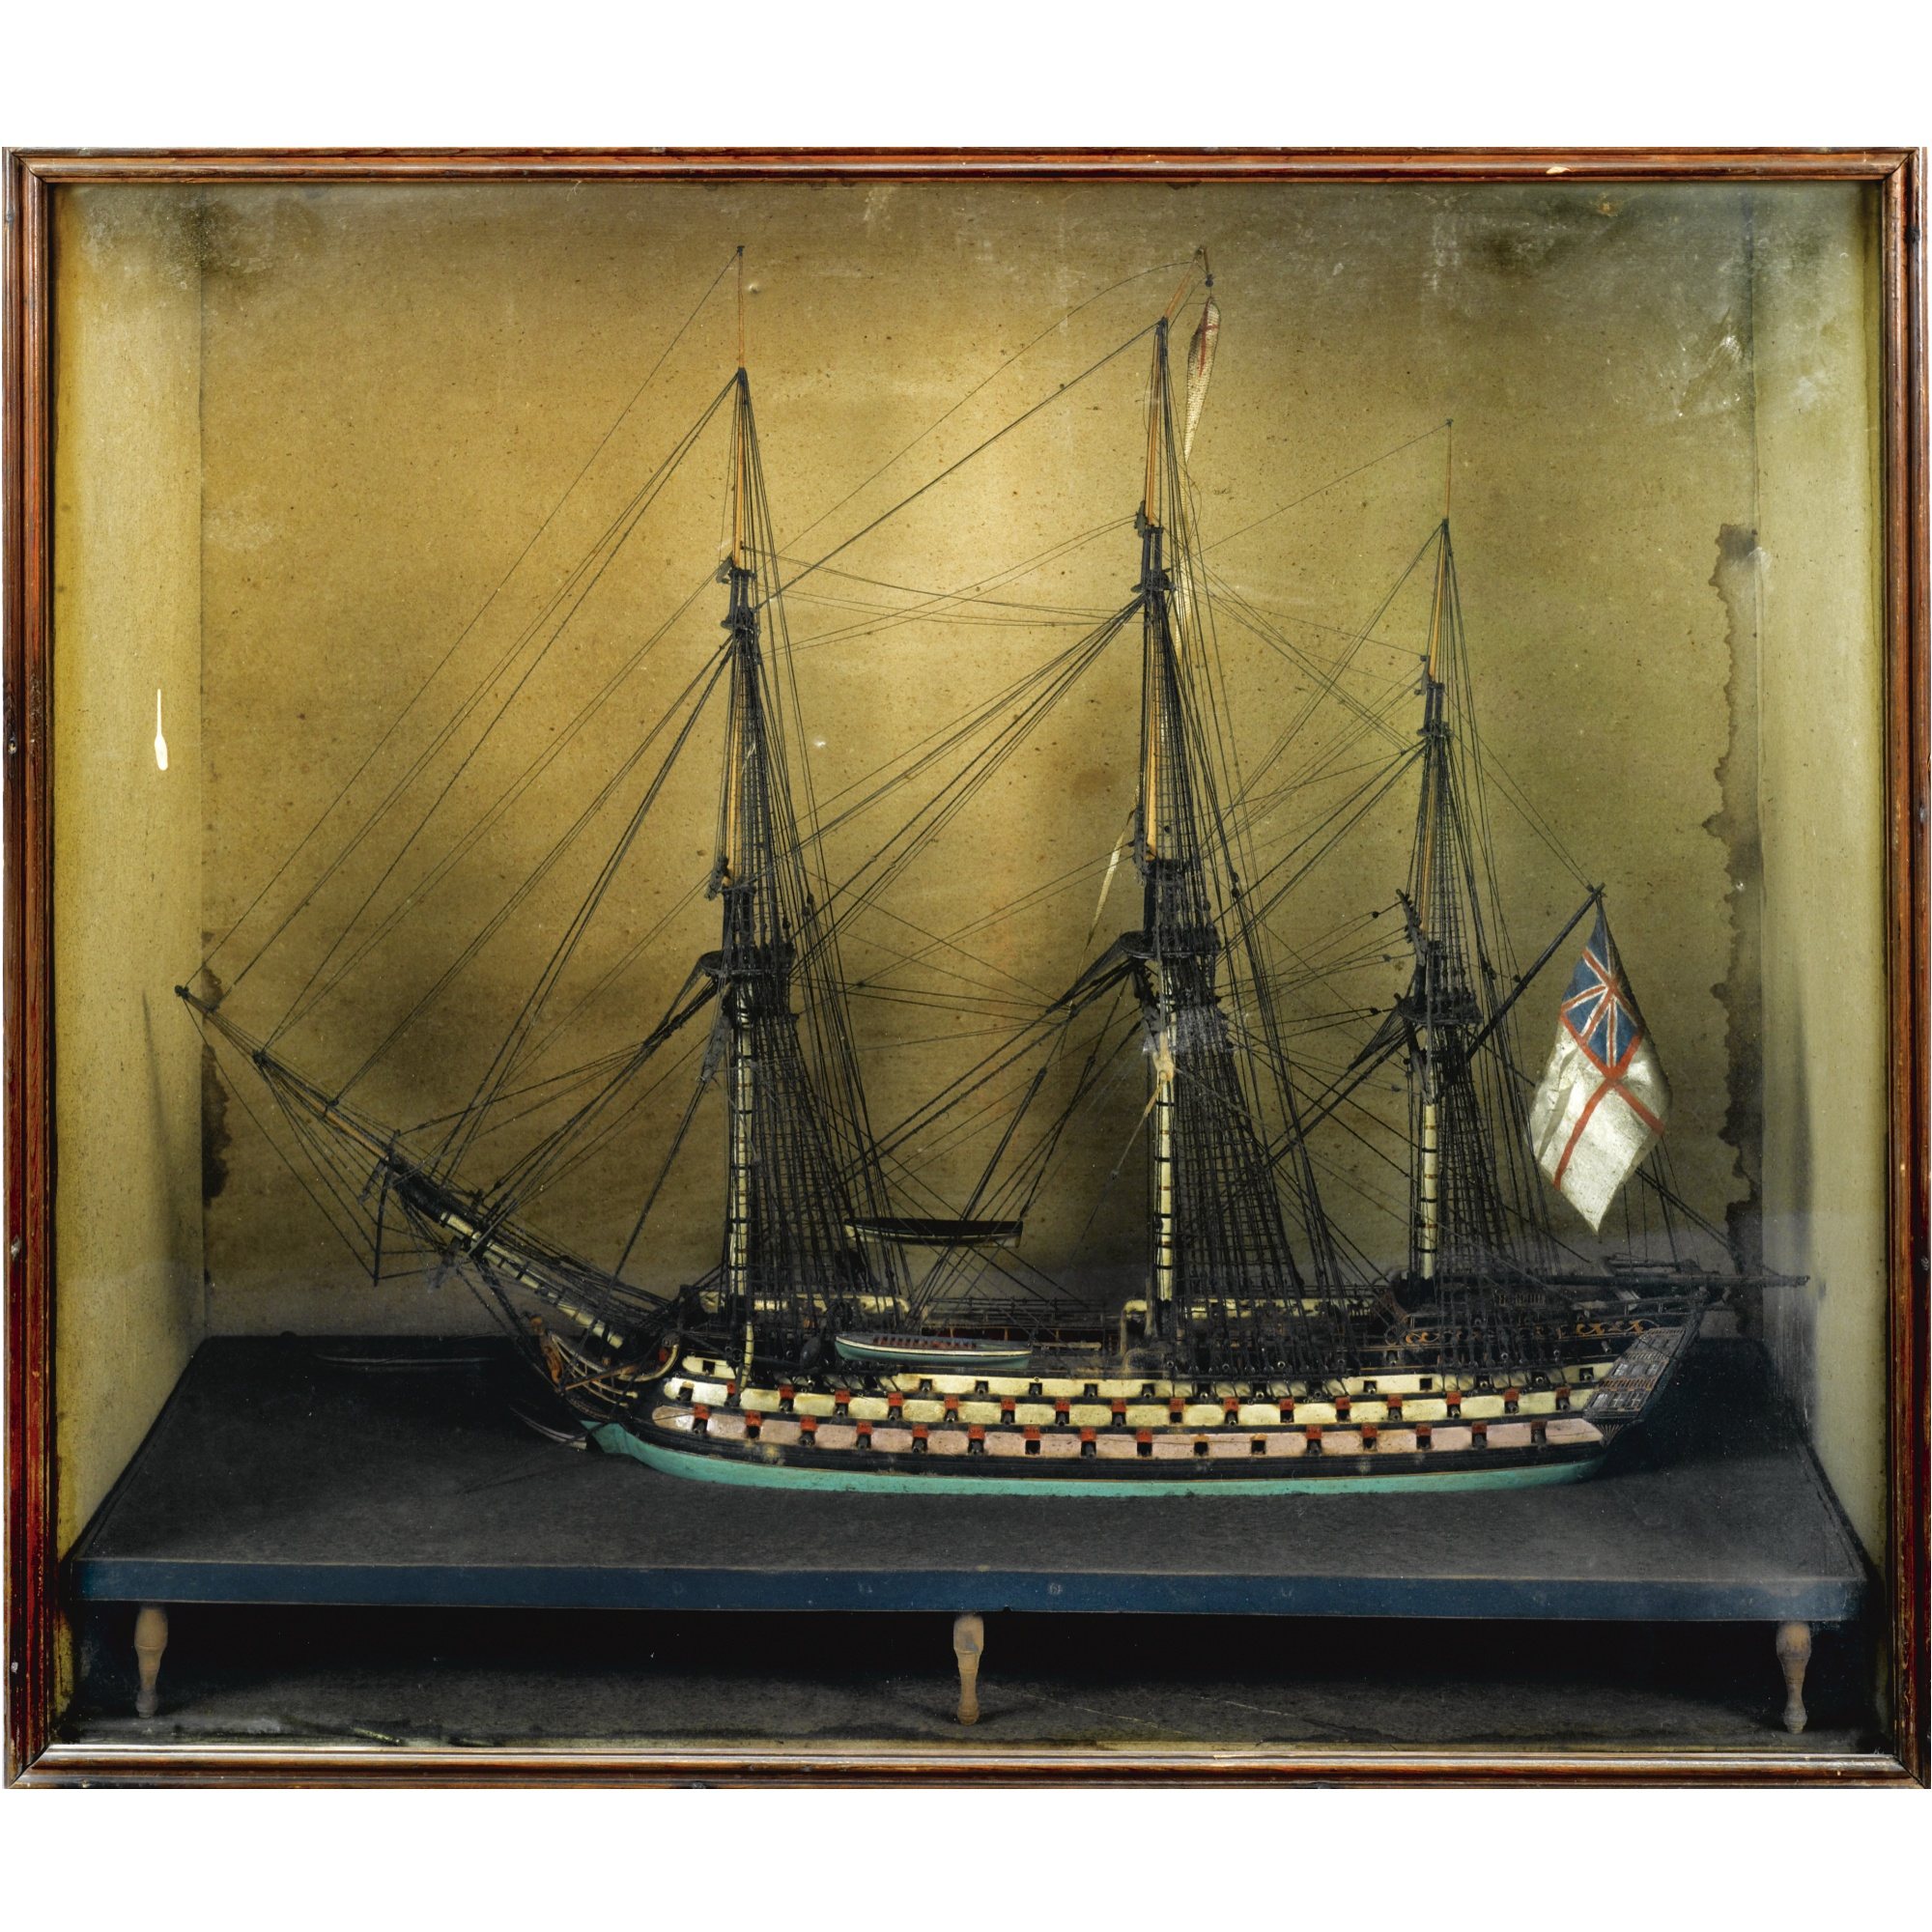 A George III ships model of a Man-O-War